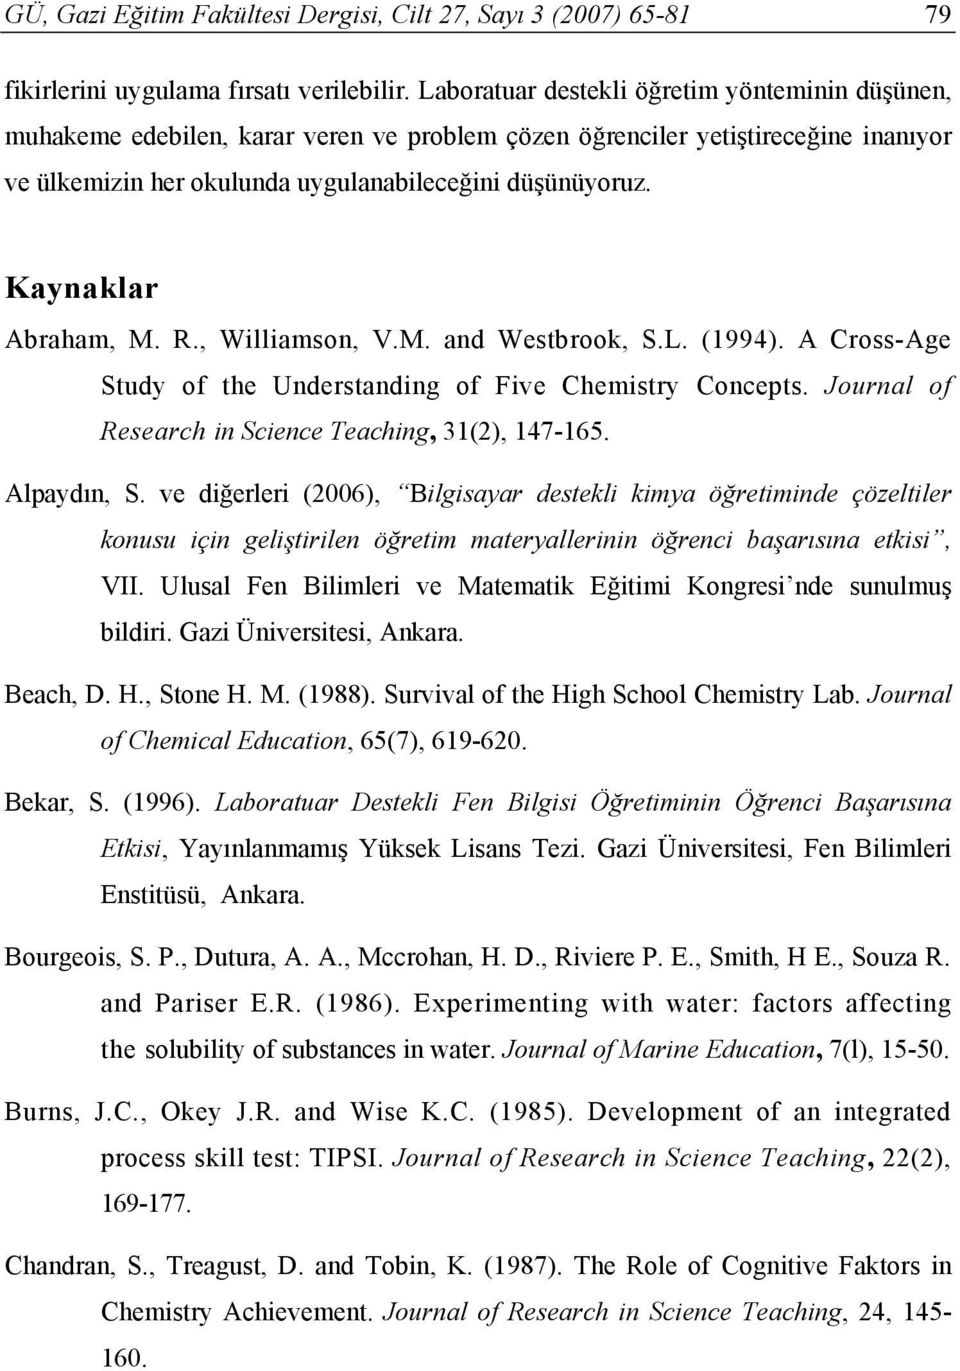 Kaynaklar Abraham, M. R., Williamson, V.M. and Westbrook, S.L. (1994). A Cross-Age Study of the Understanding of Five Chemistry Concepts. Journal of Research in Science Teaching, 31(2), 147-165.